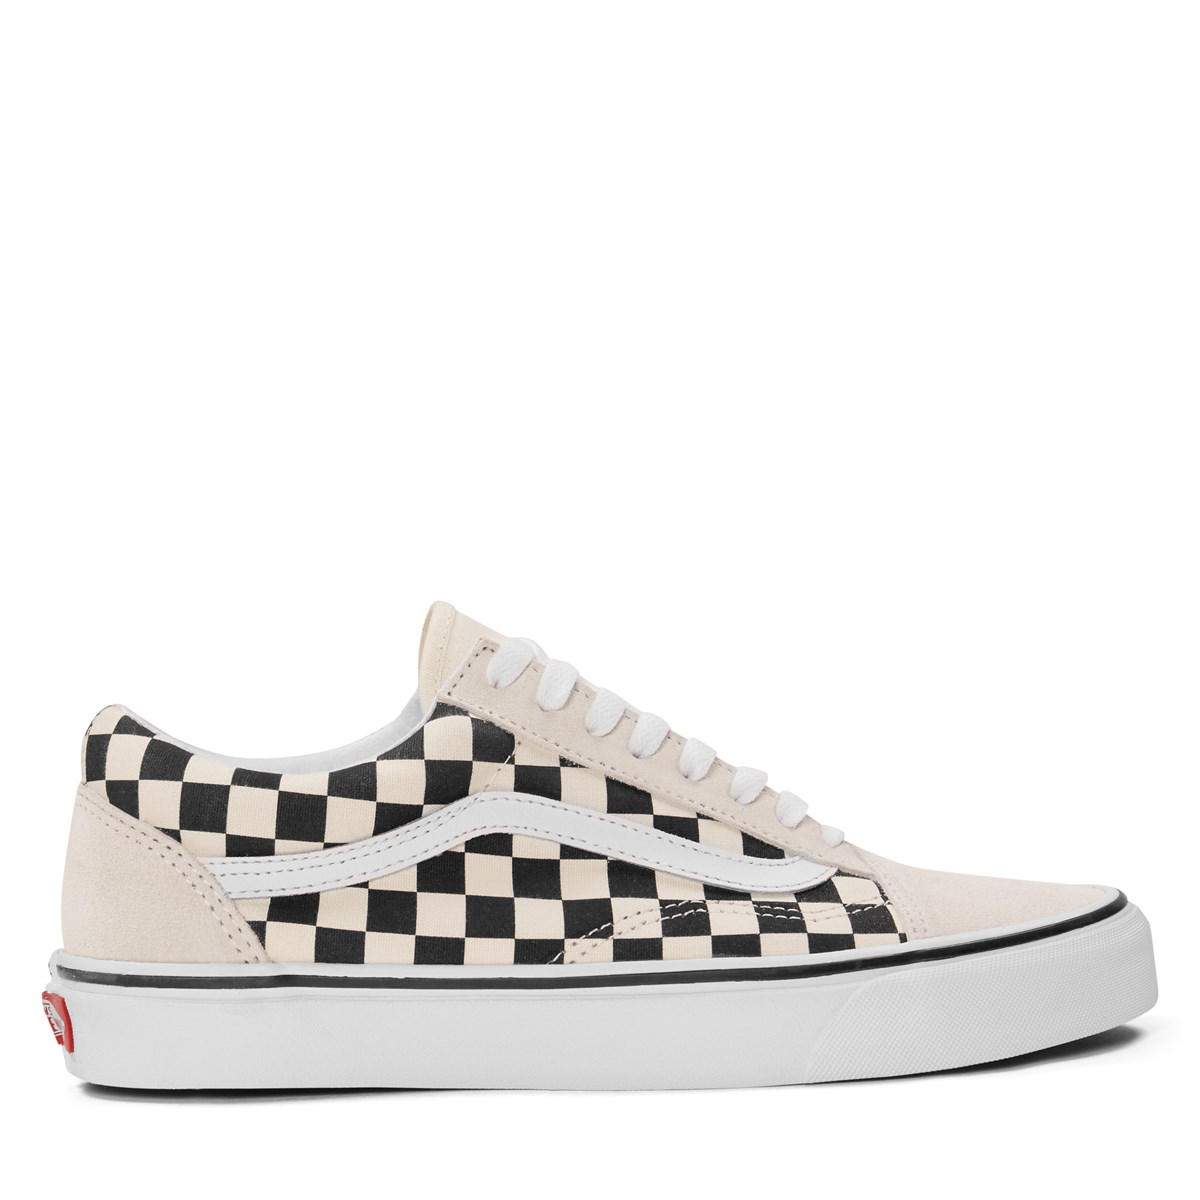 d01dbe57ecae81 Men s Old Skool Checkerboard Sneaker. Previous. default view ...